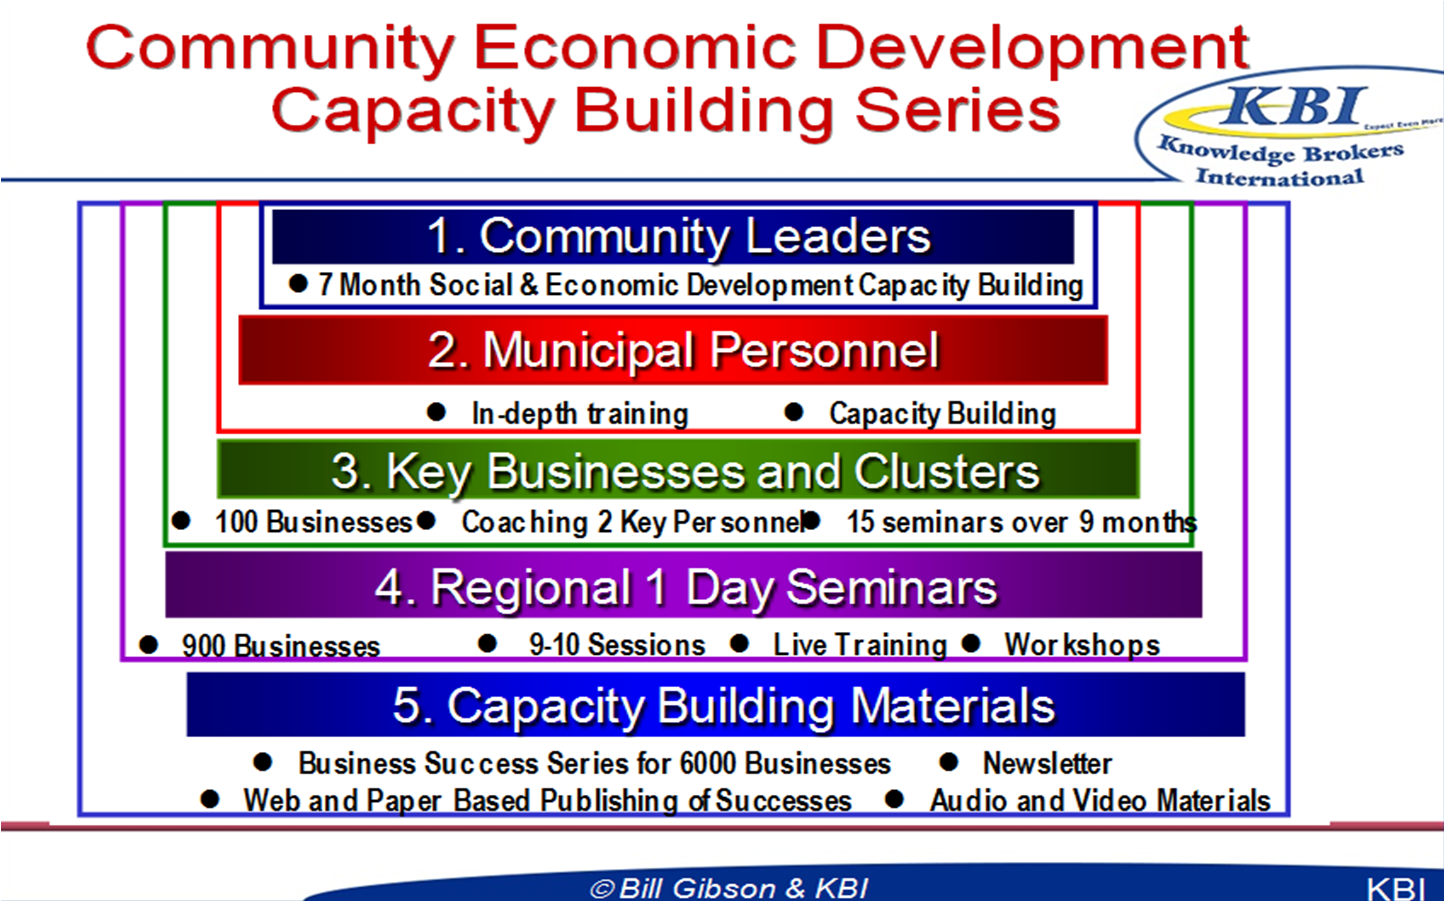 CommunityEconomicDevelopmentCapacityBuildingSeries « Sales